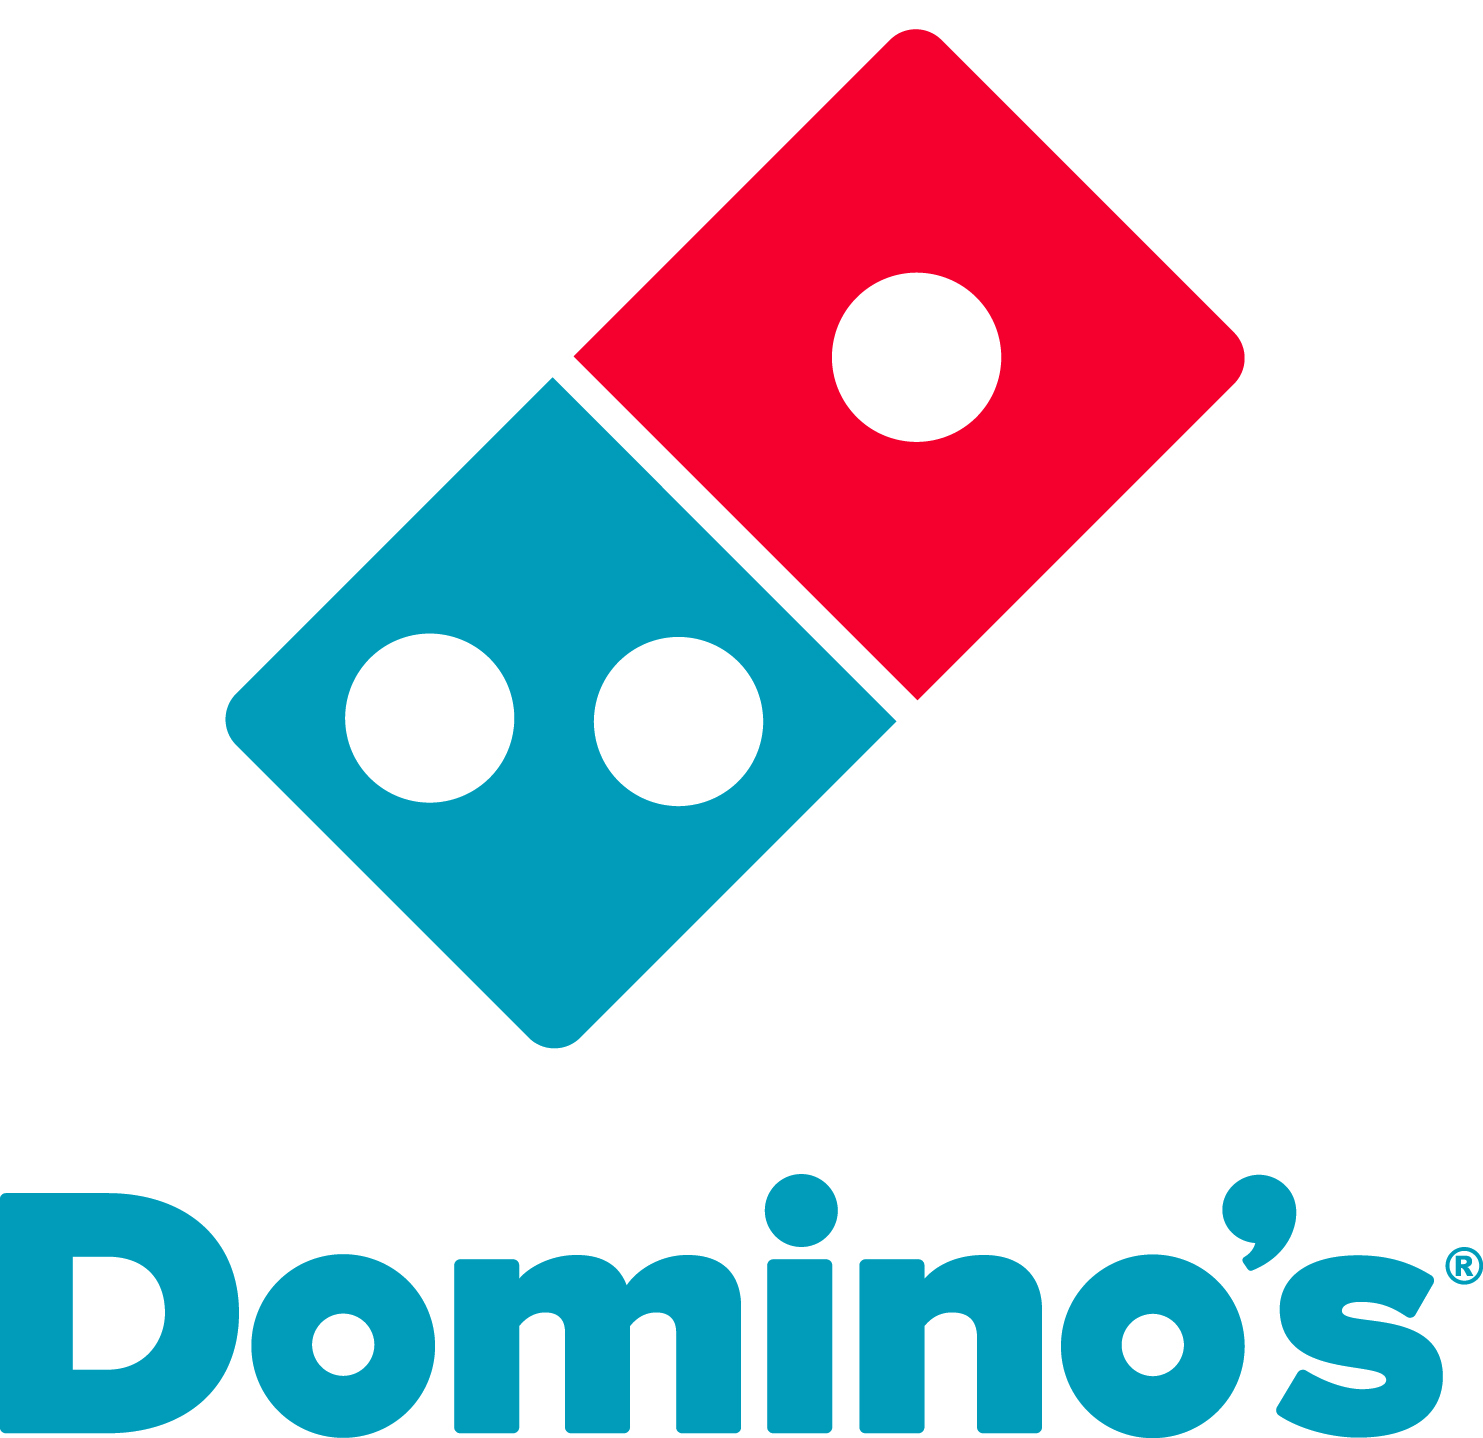 Dominos logo square